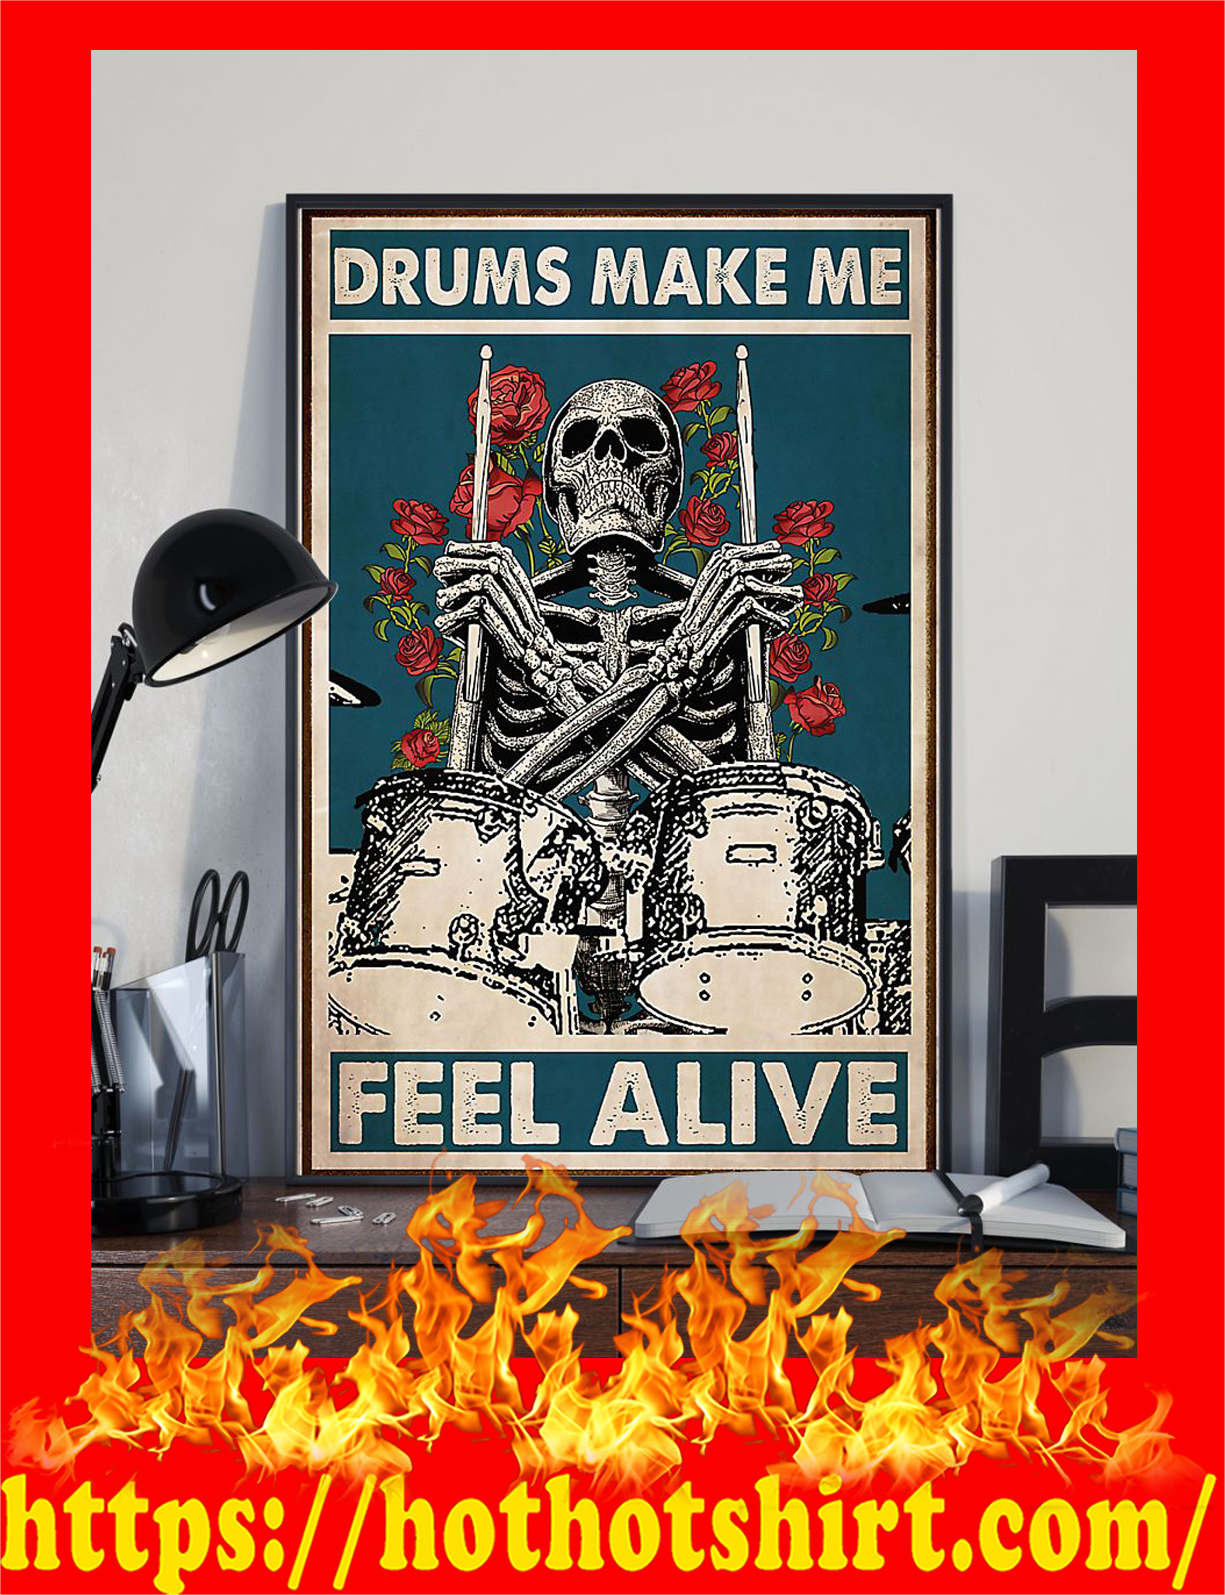 Skeleton drummer drums make me feel alive poster - Pic 2